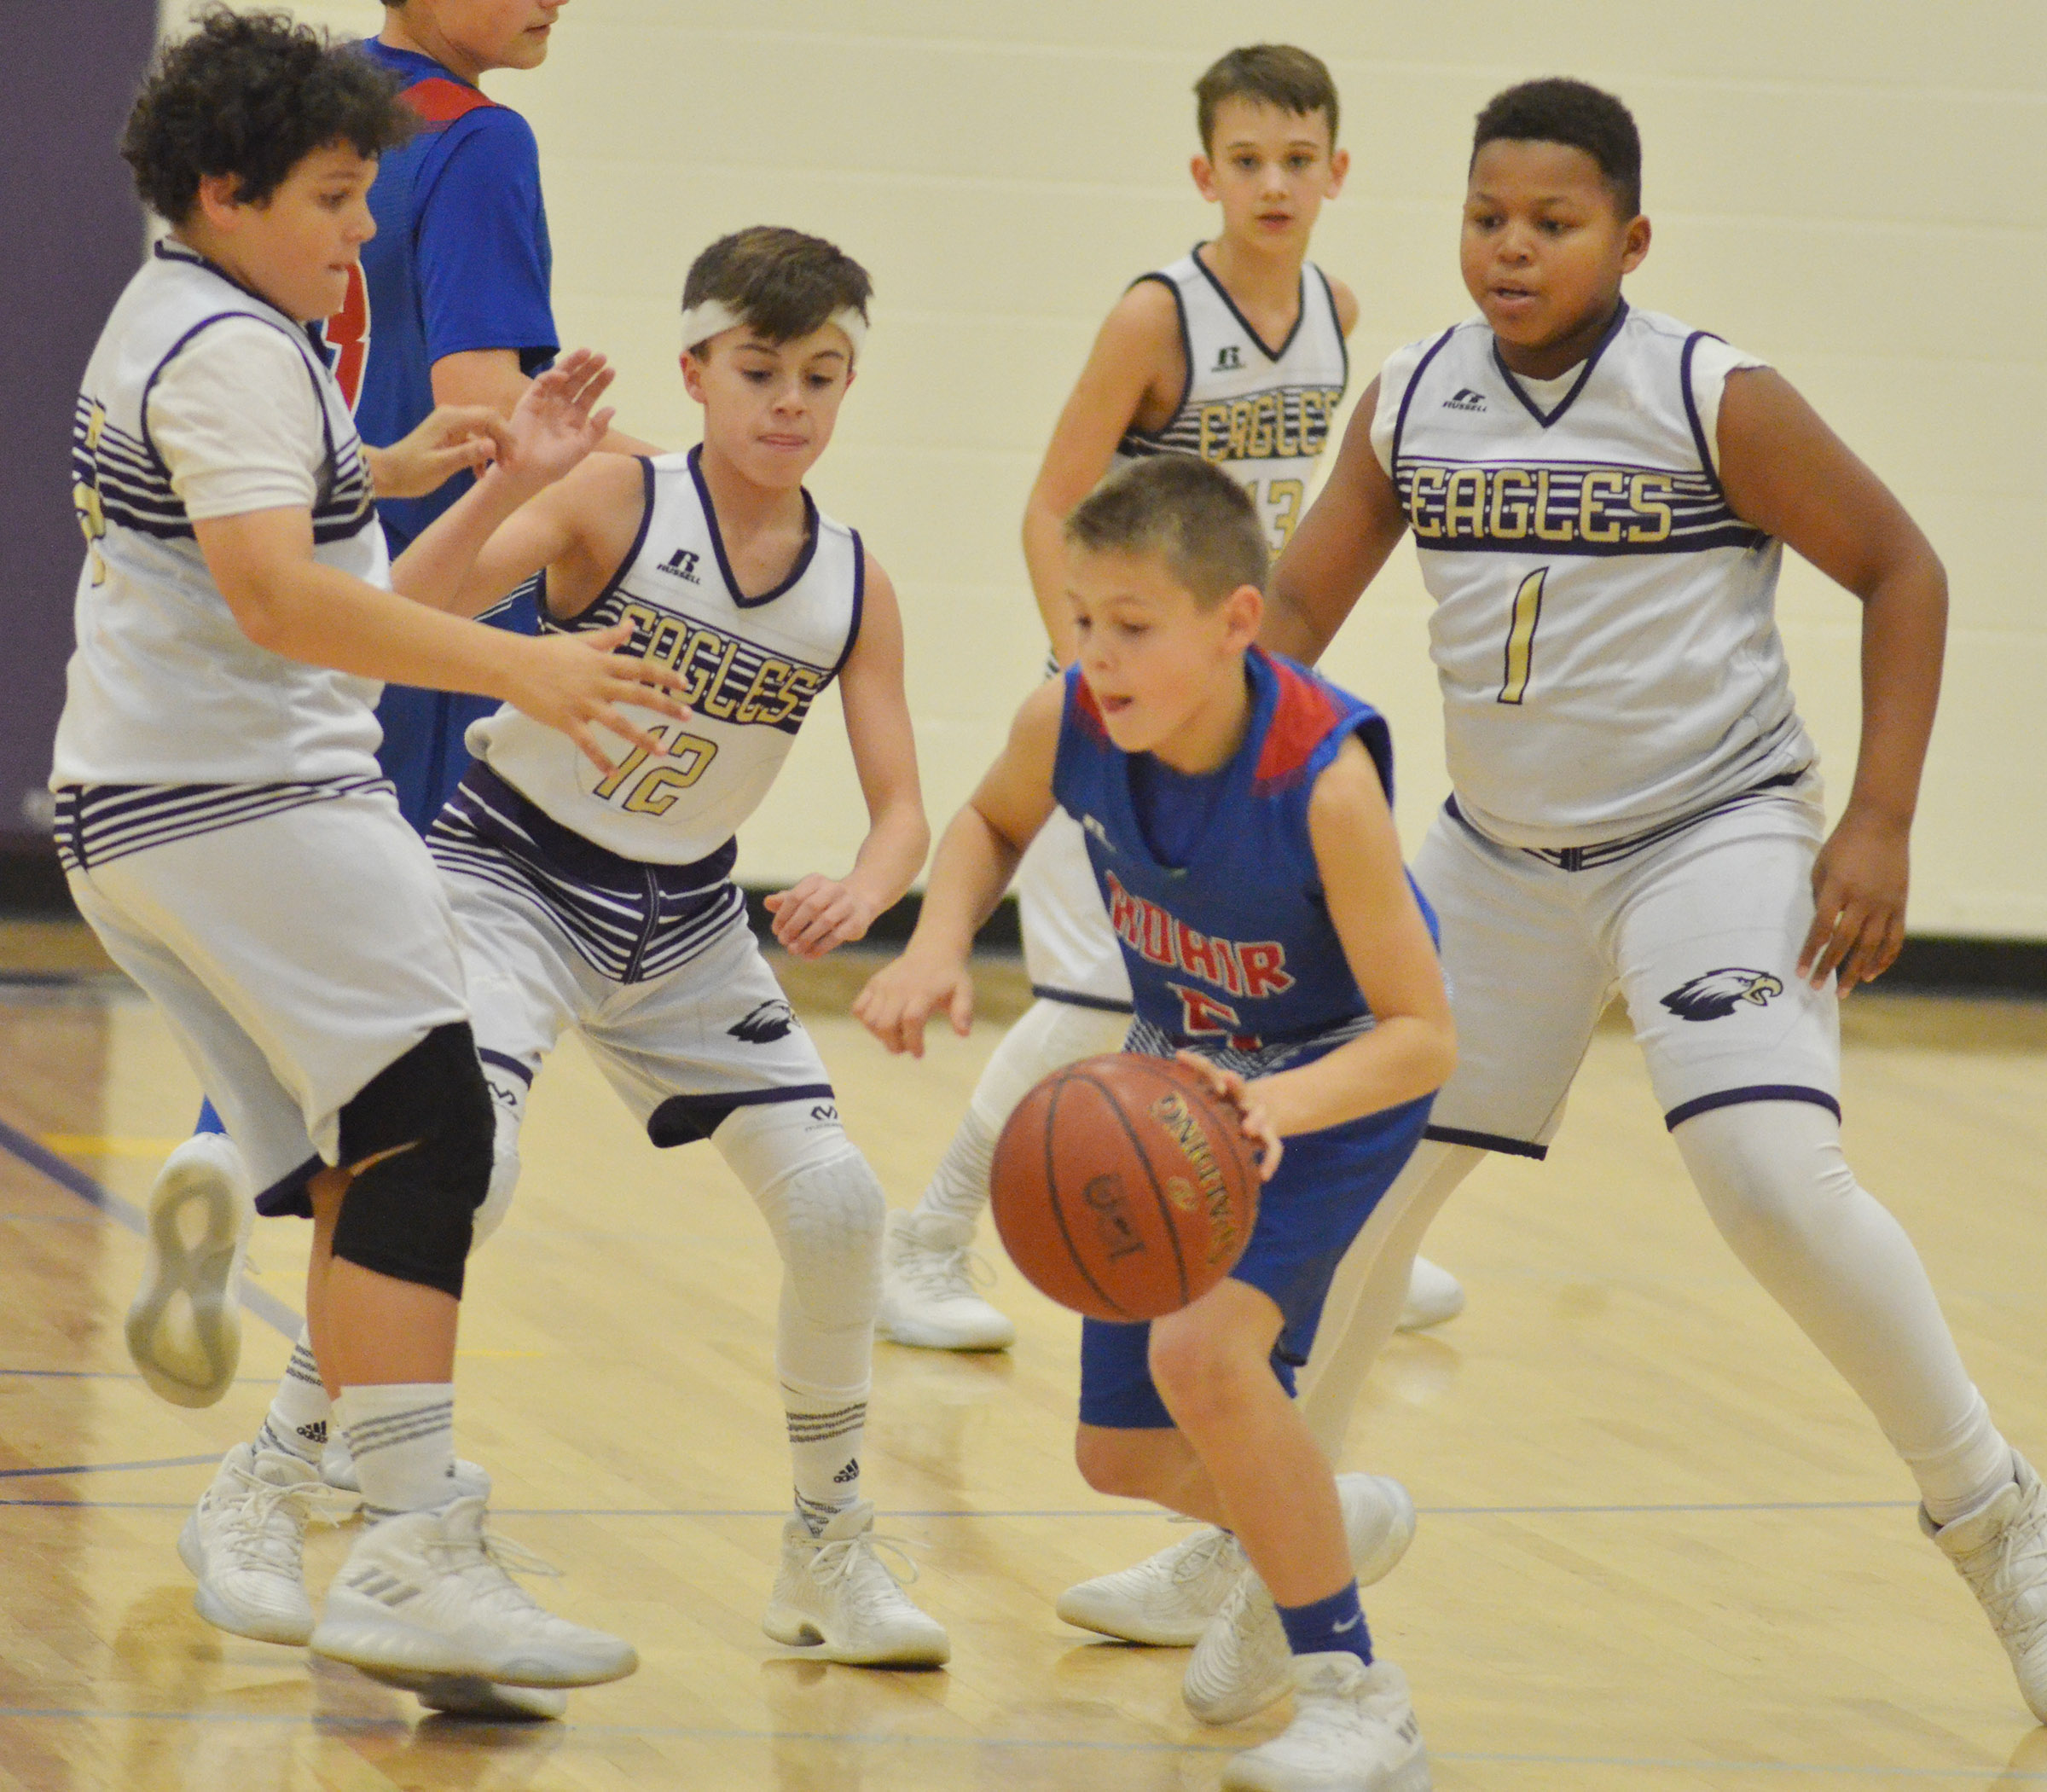 From left, CMS seventh-graders Kaydon Taylor, Chase Hord, Camren Vicari and Keondre Weathers play defense.